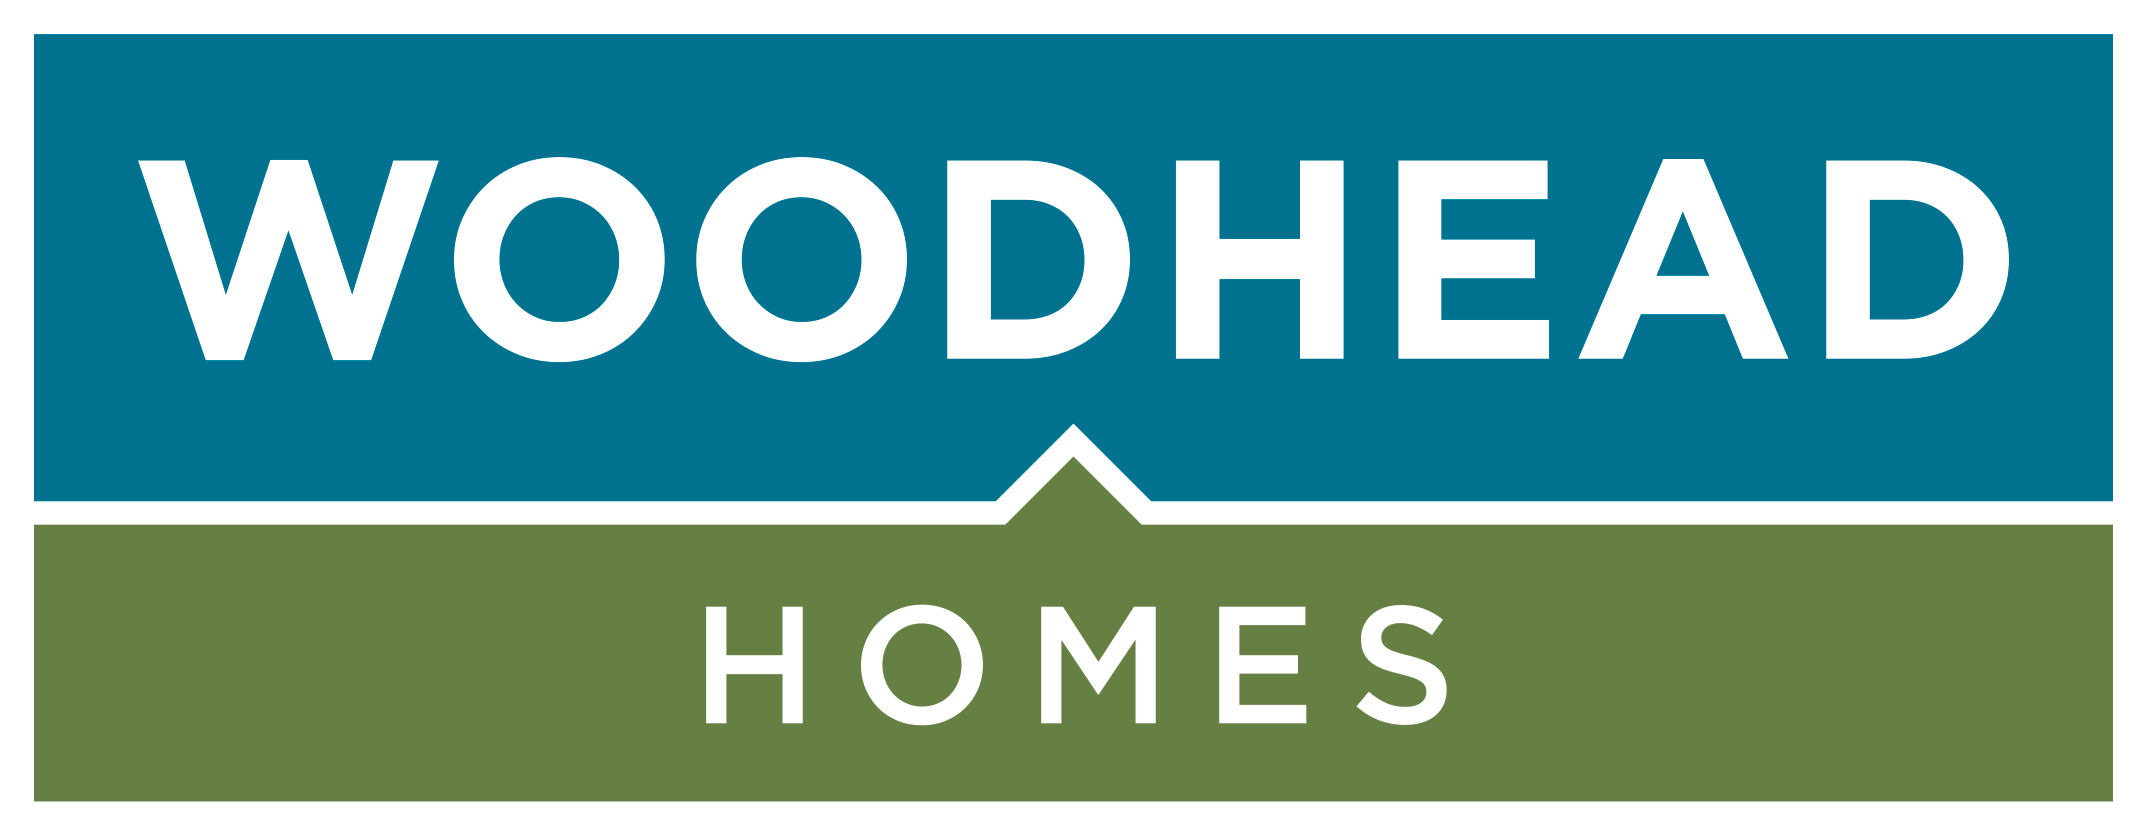 Woodhead Homes website